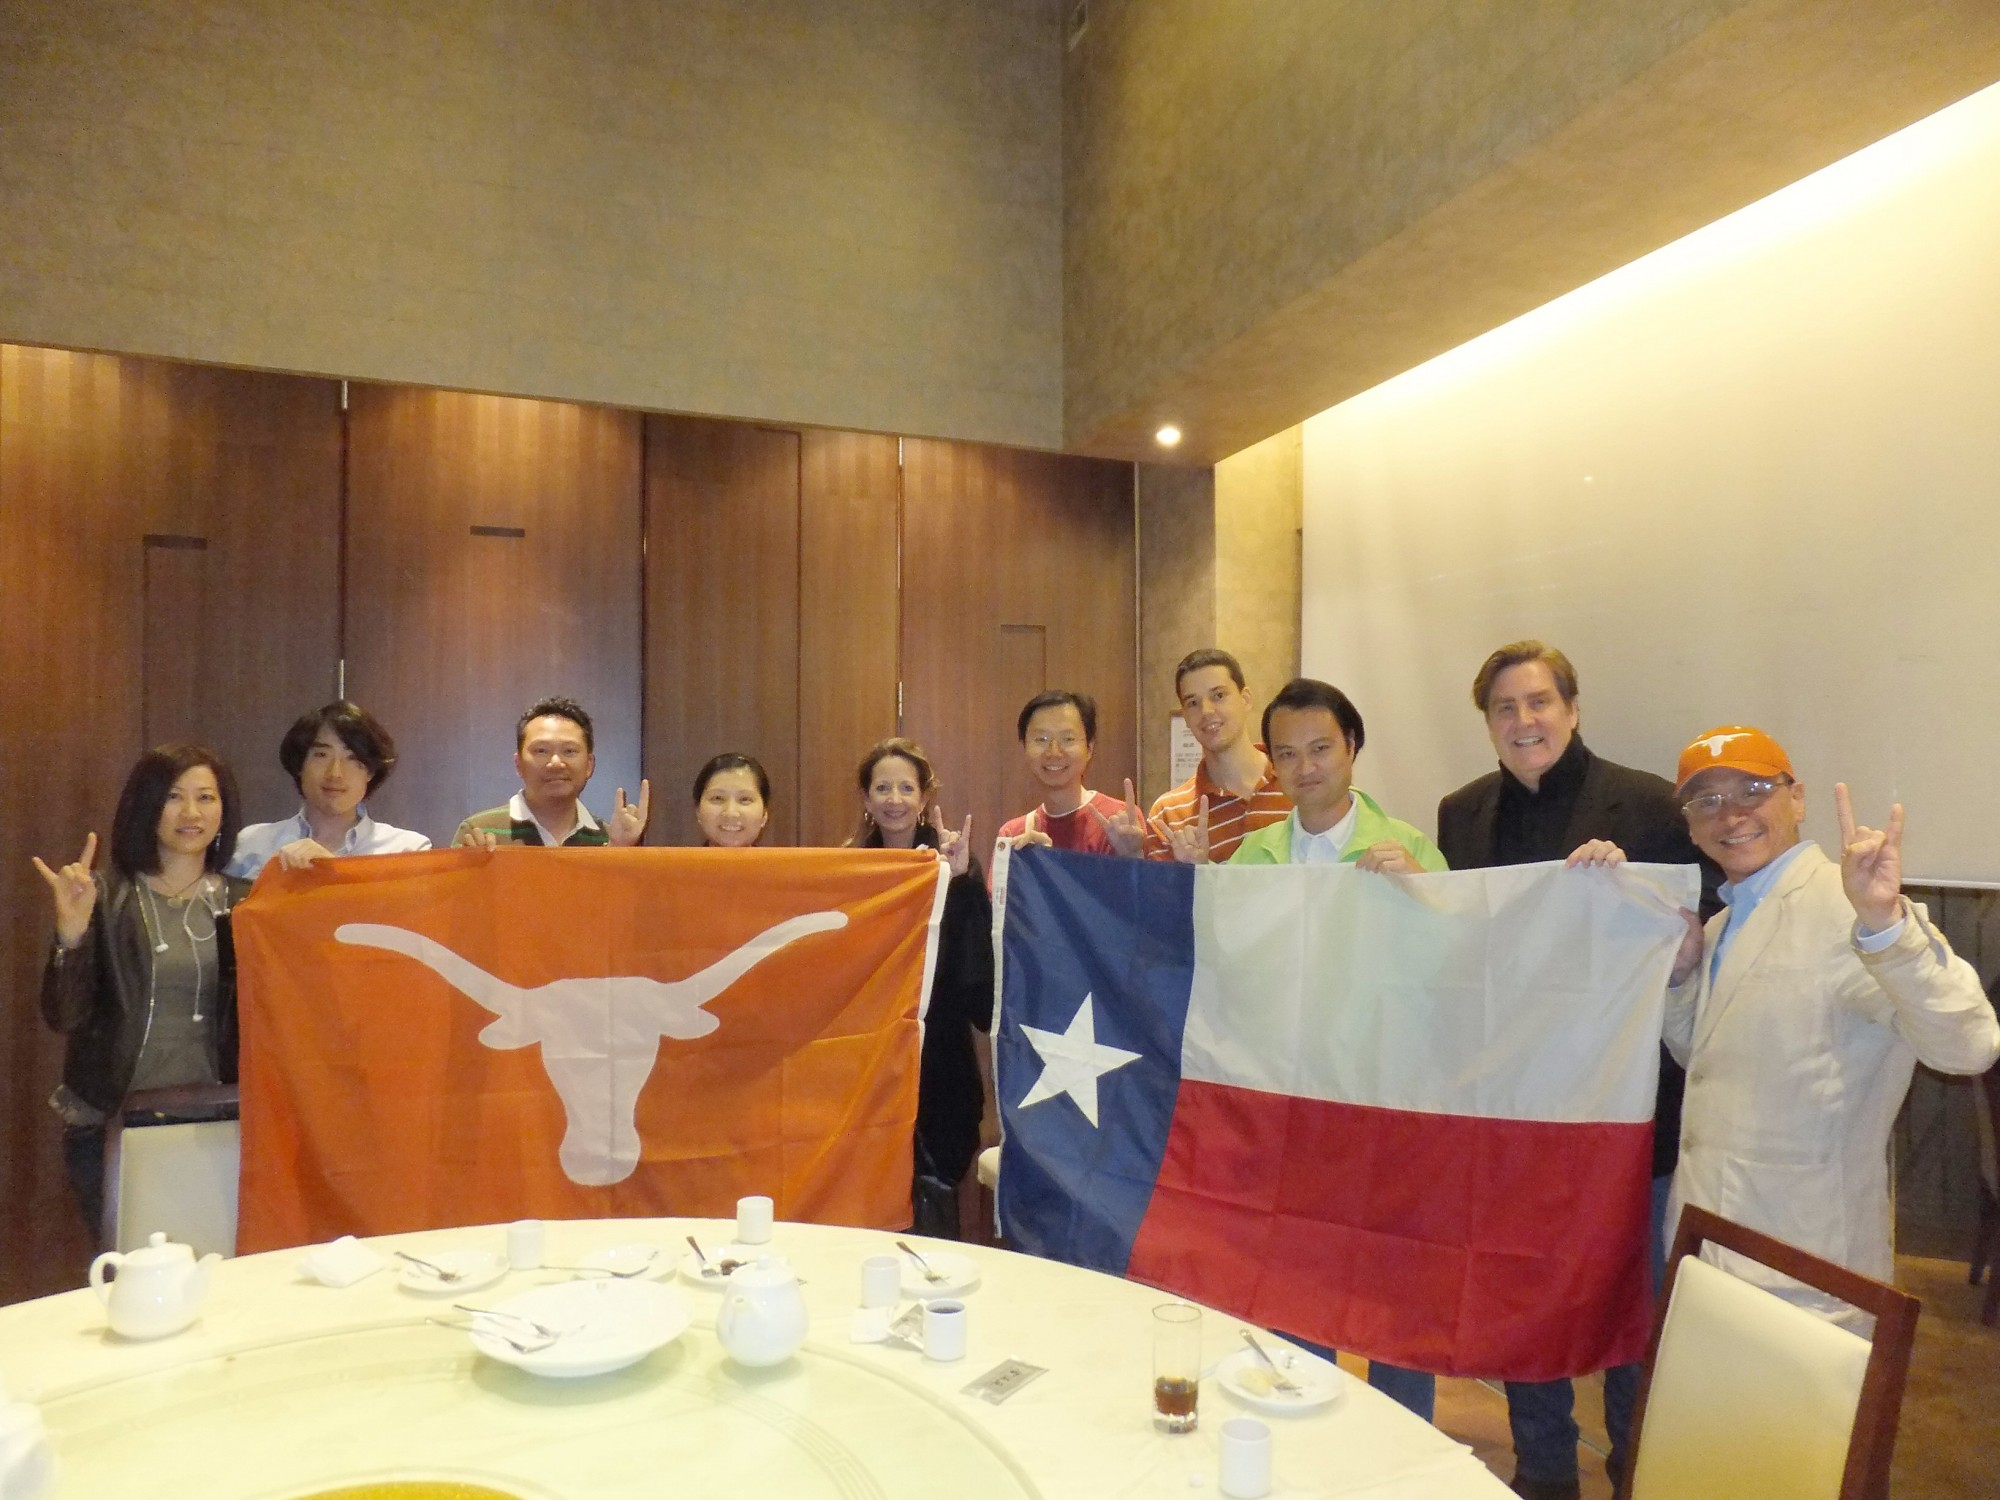 HKTX Annual General Meeting 2013 and Texas Independence Day Dinner